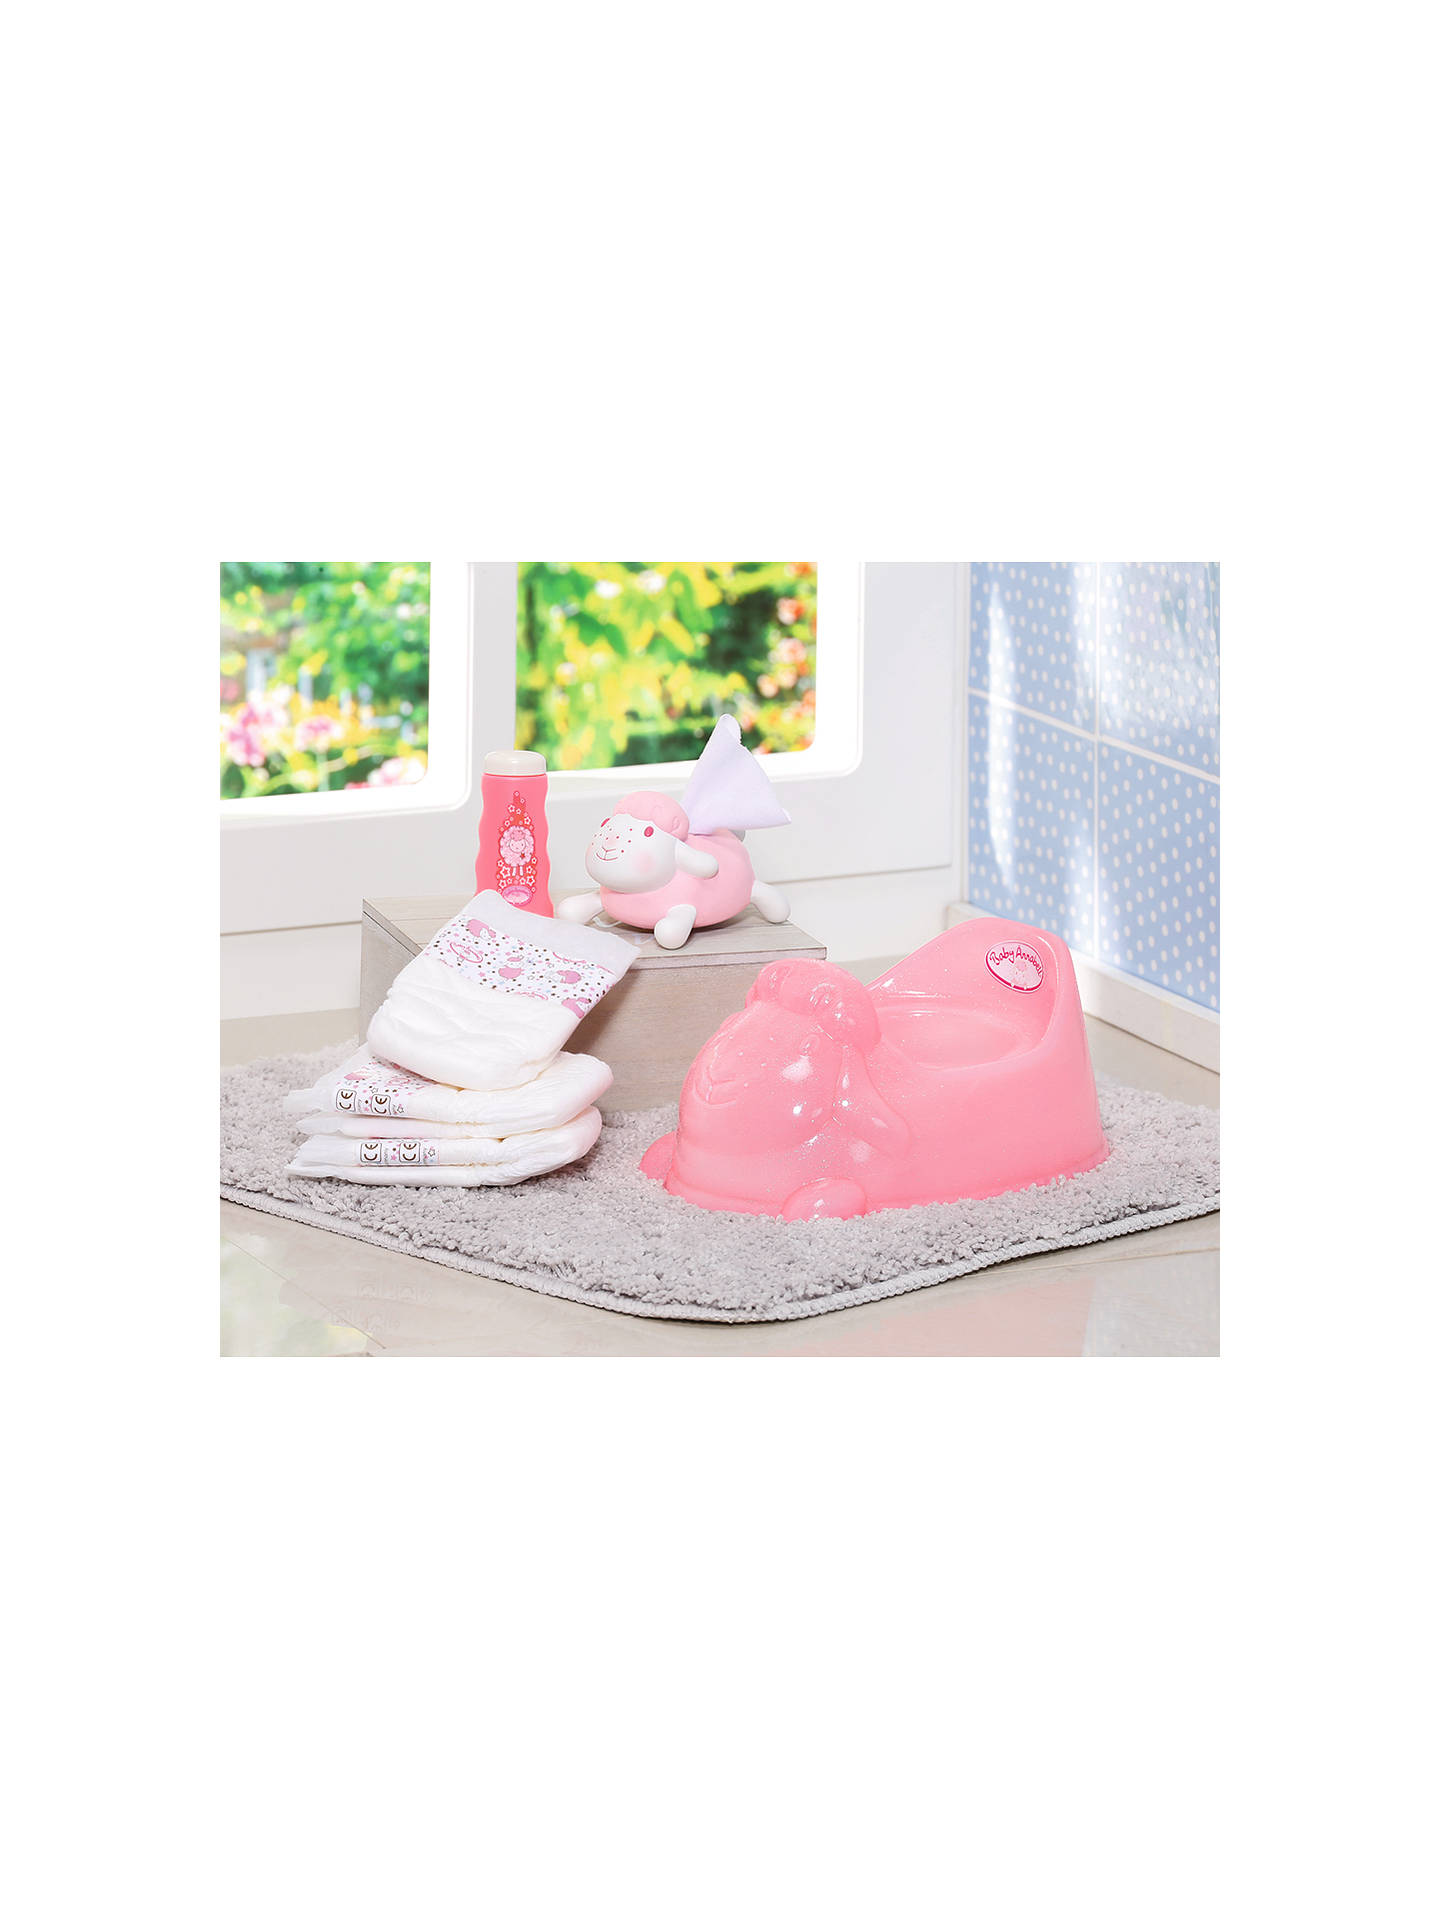 Baby Annabell Potty Training Set At John Lewis Amp Partners